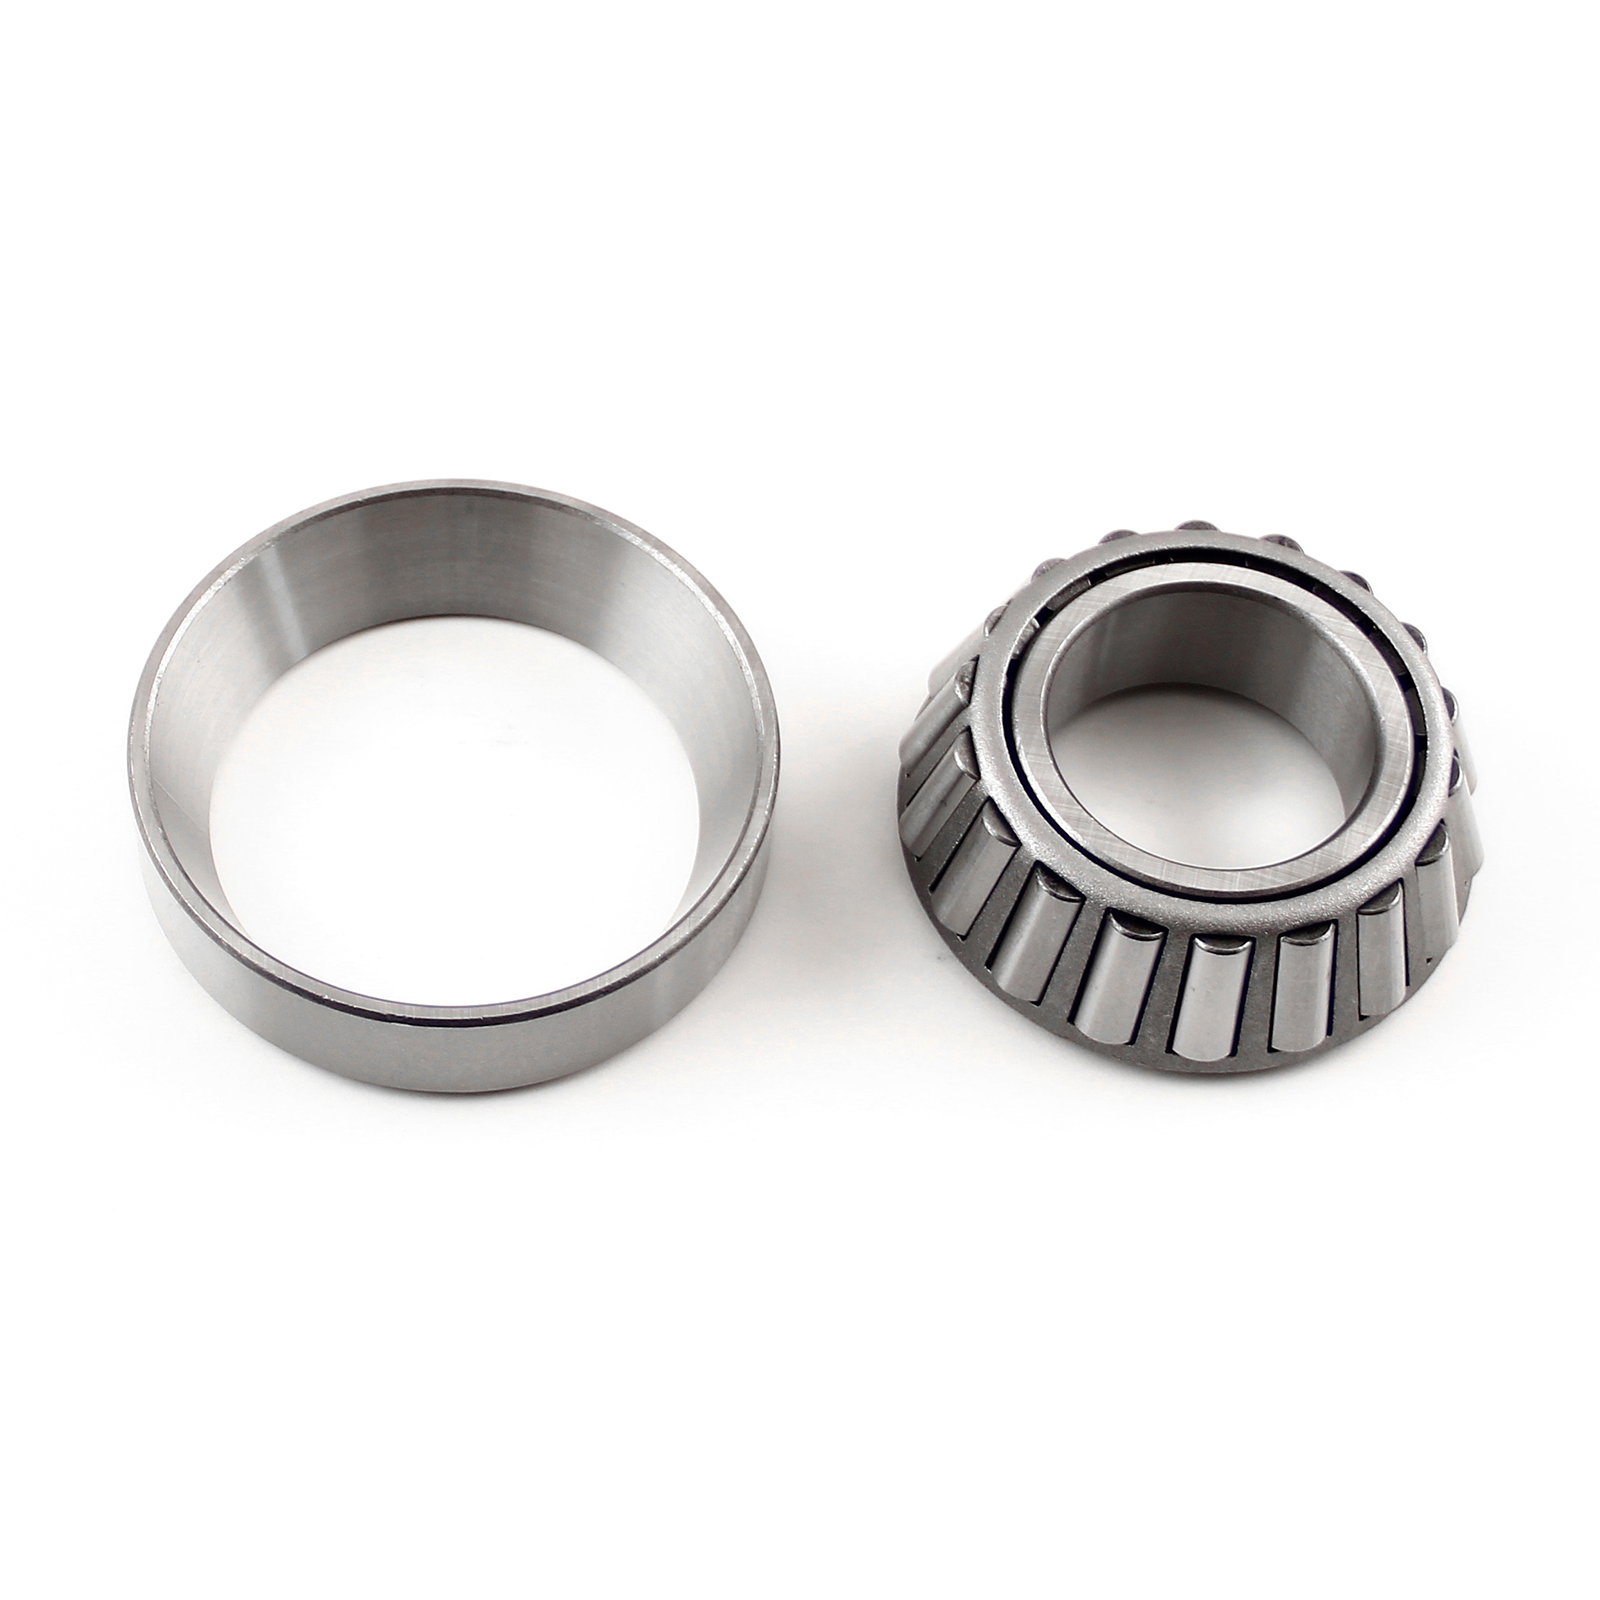 Pinion Bearing Industry Std Ref: HM804846 / HM804810